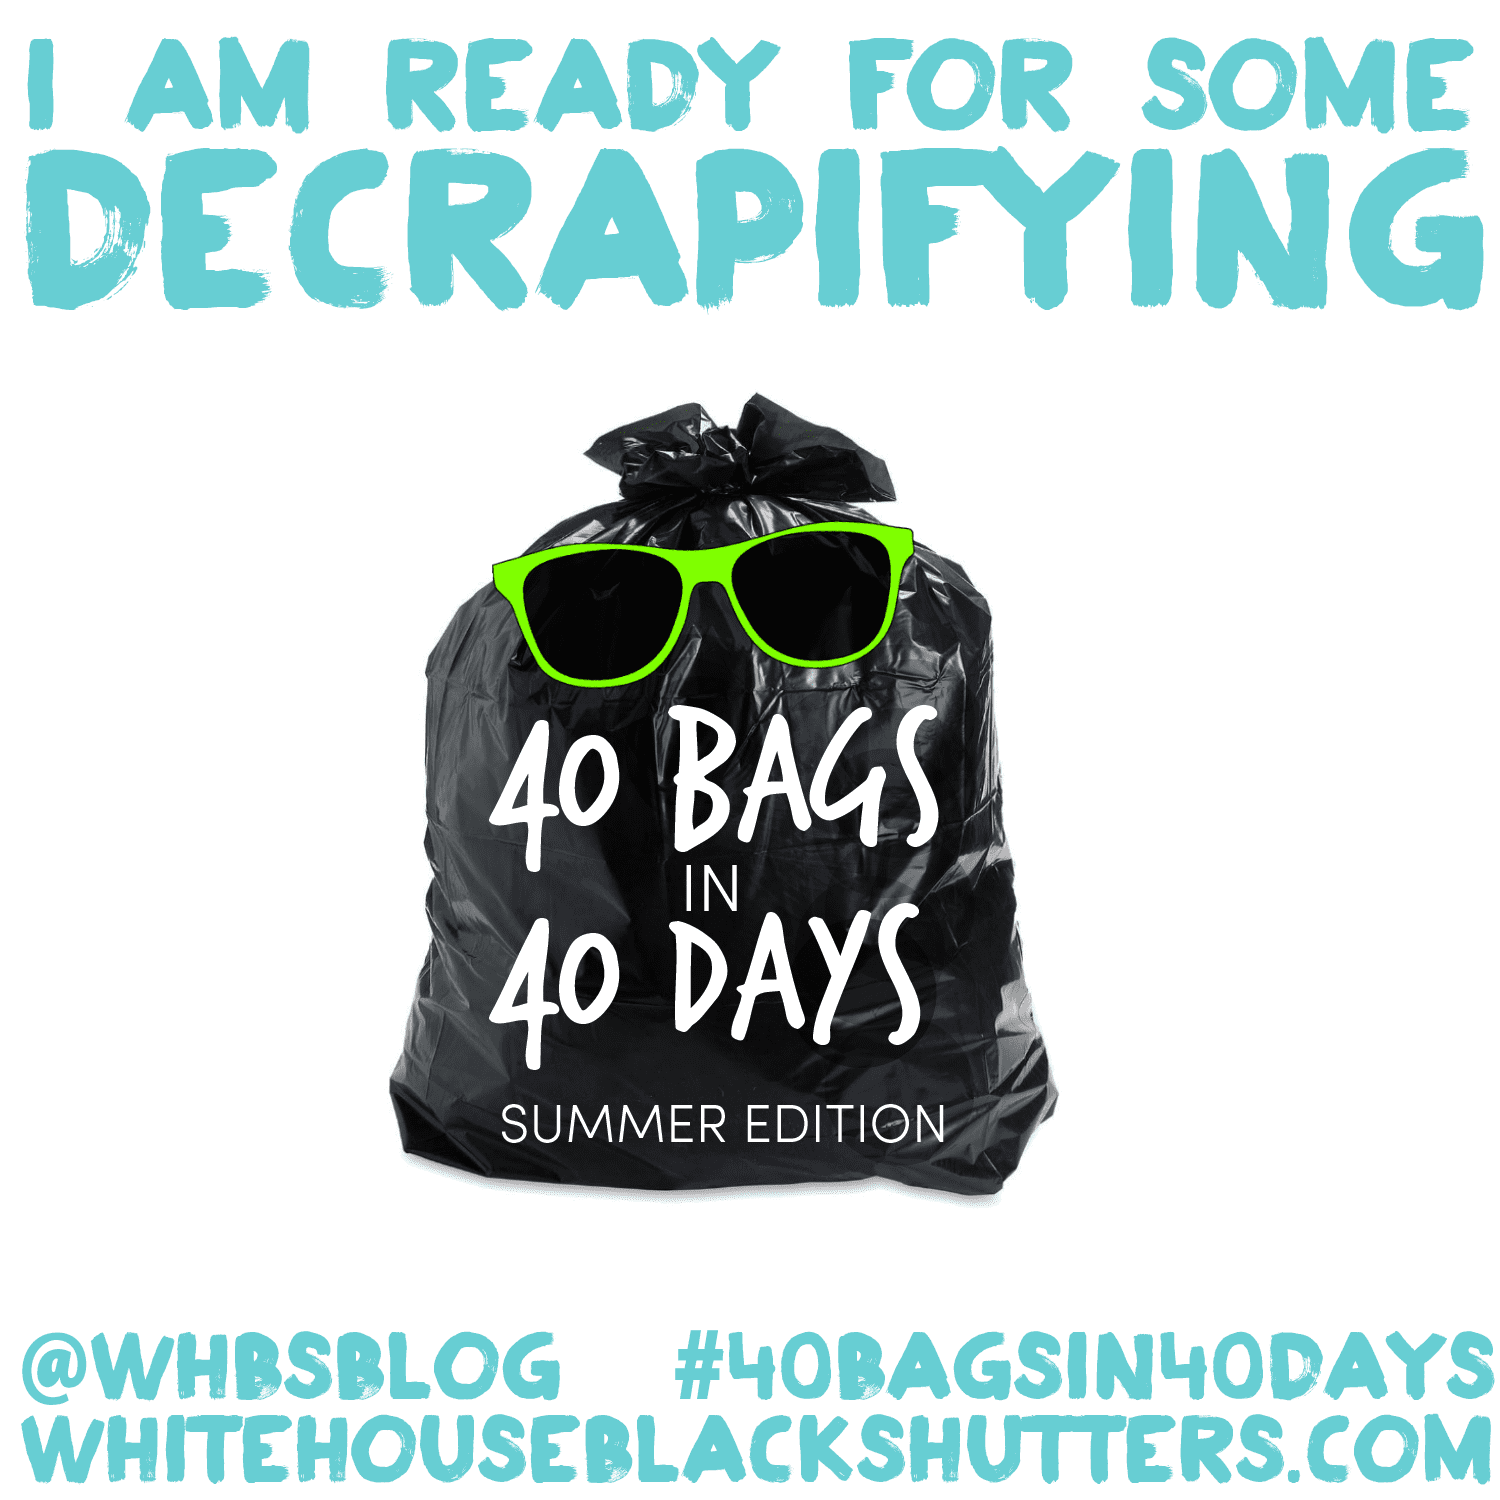 40 Bags in 40 Days Summer Edition